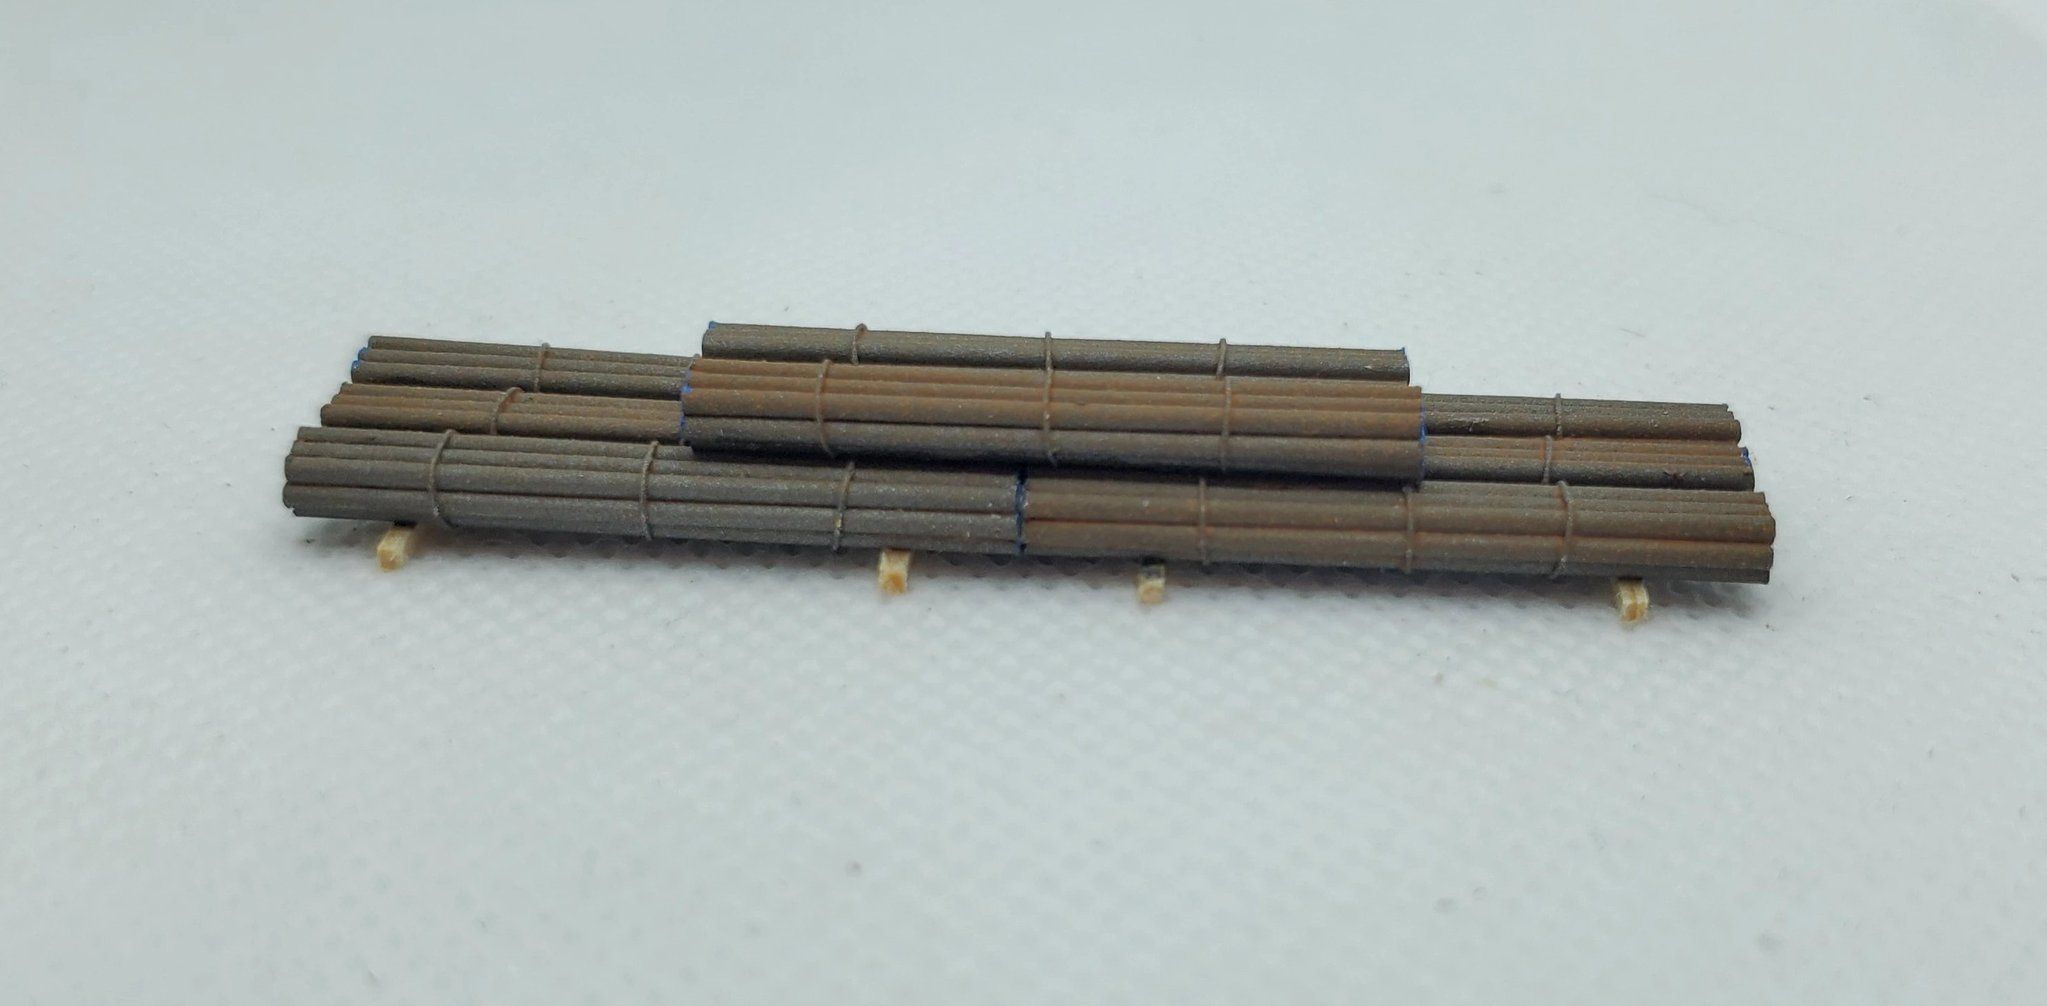 N Scale - CG Model Trains - 13310 - Railcar Loads - Painted/Unlettered - Iron Rod Bundles